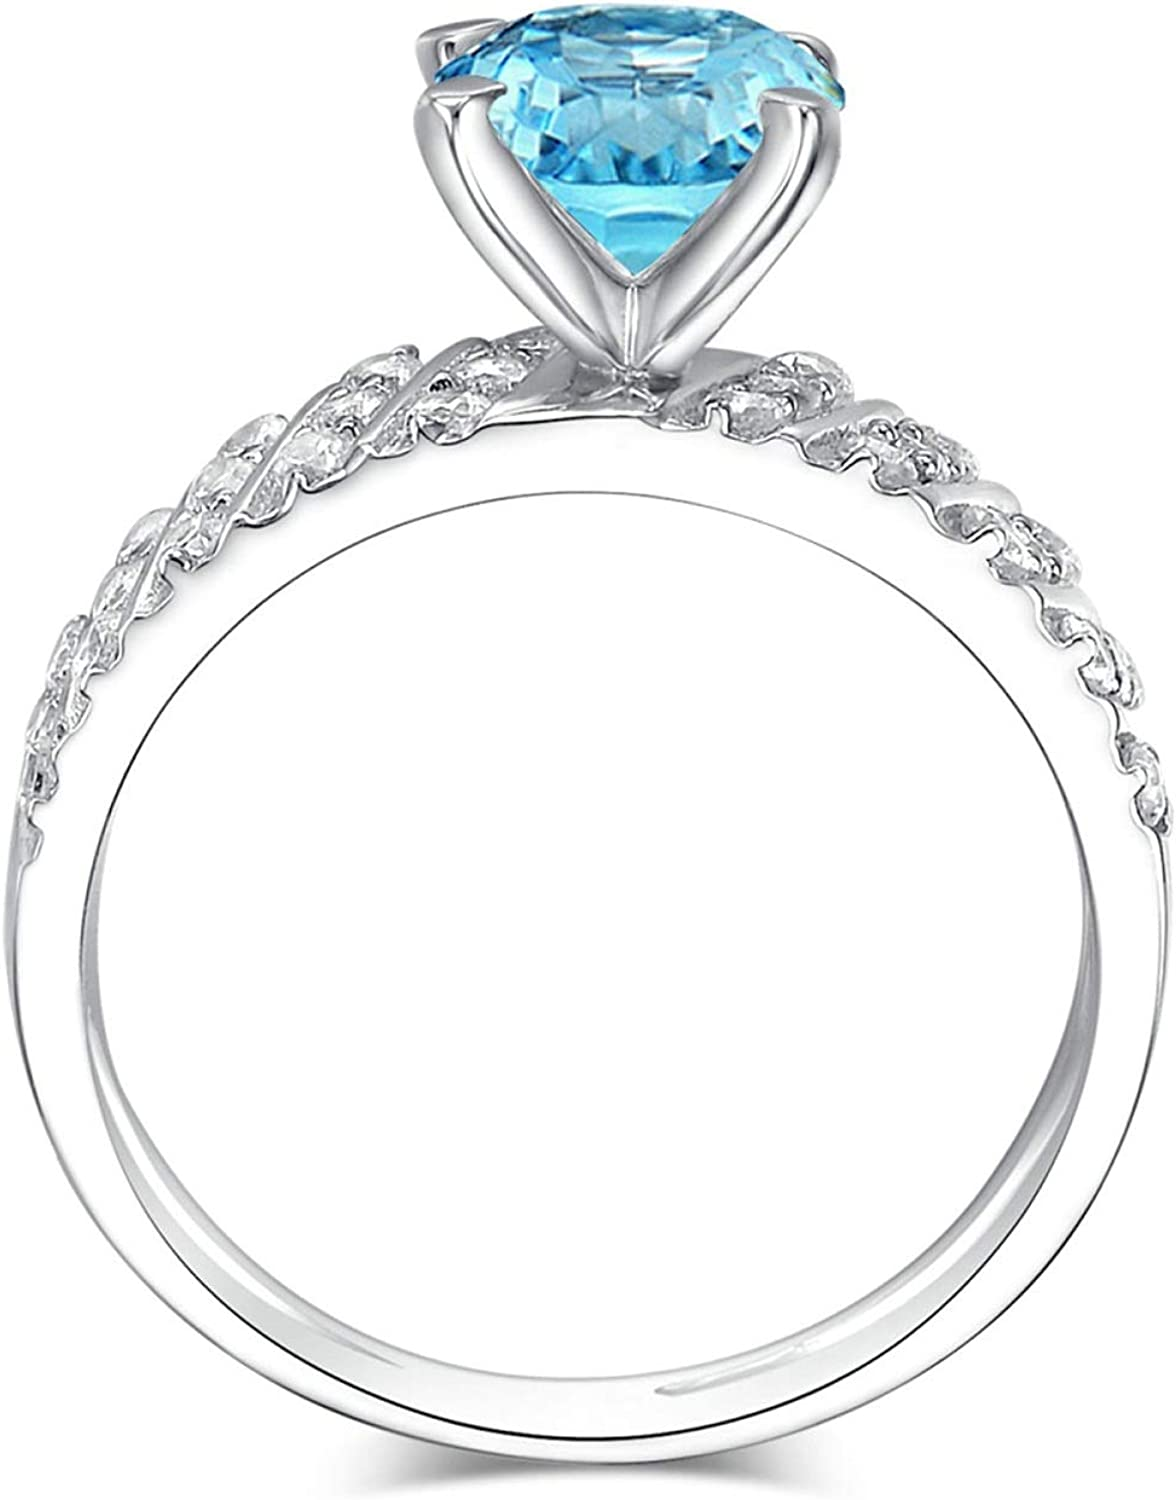 AMDXD Jewellery 925 Sterling Silver Wedding Rings for Women Blue Round Cut Topaz 4 Claw Round Ring